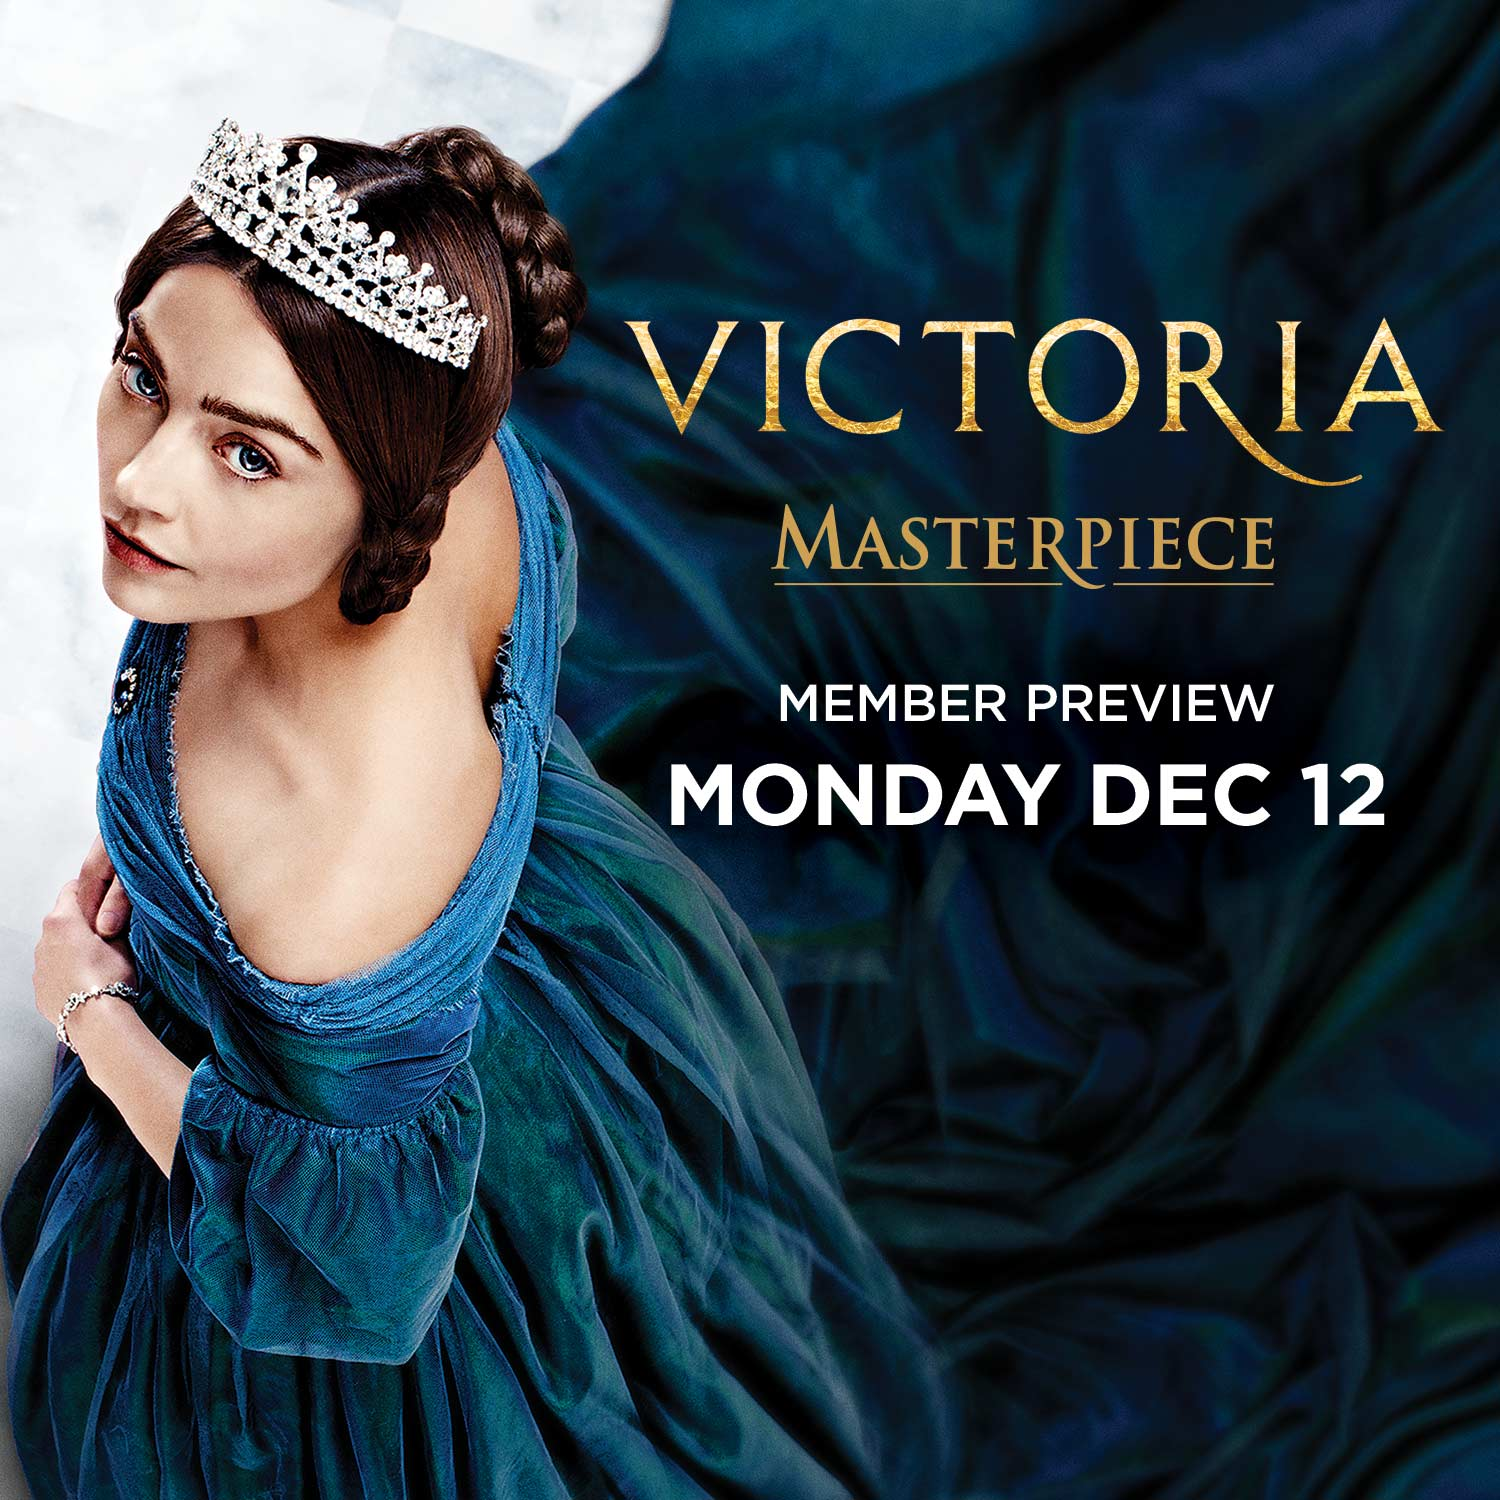 KNPB Member Preview of VICTORIA